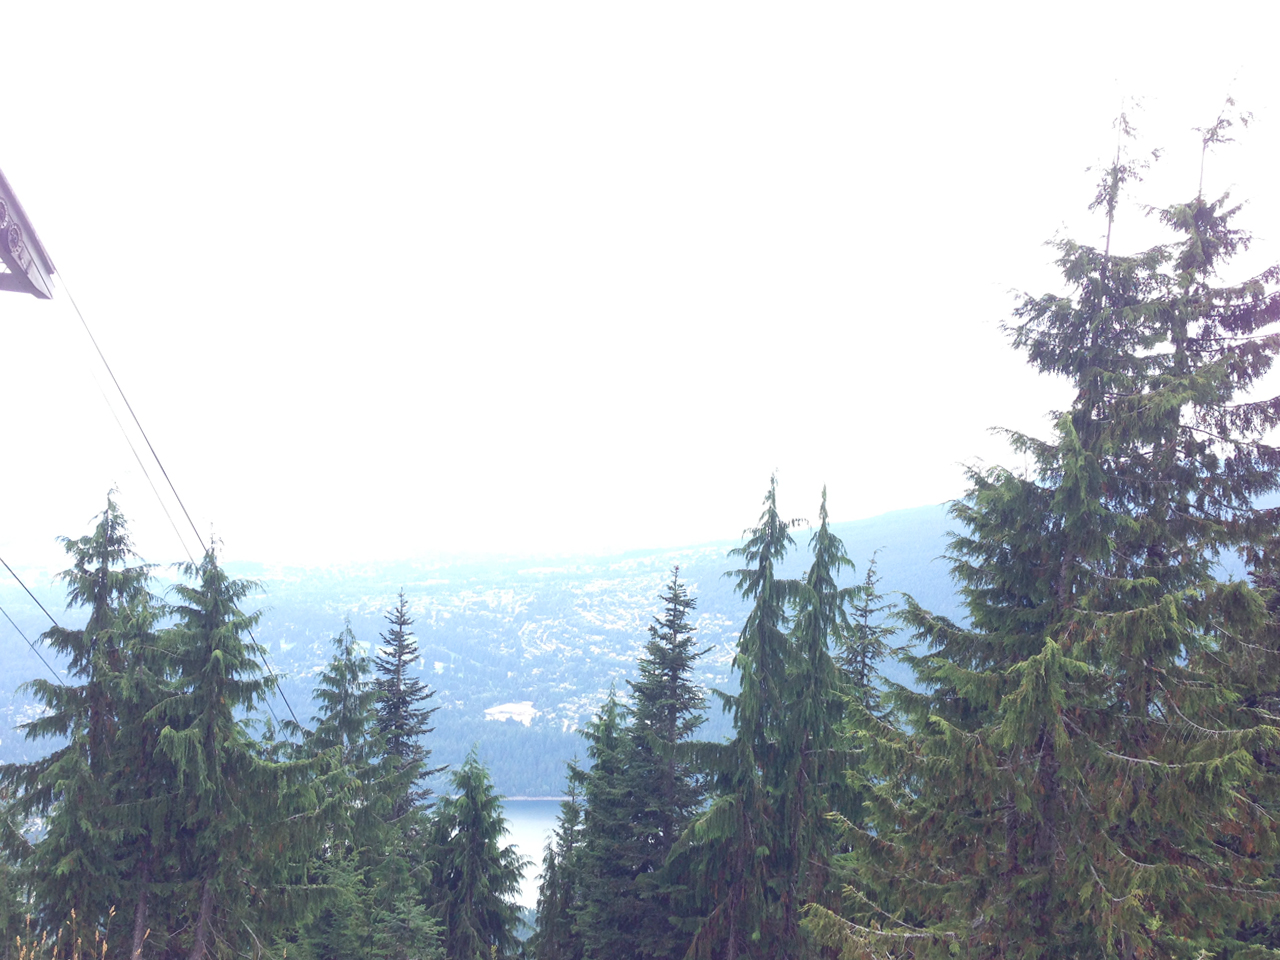 Then finally the trees begin to thin and after 1.5 hours of climbing (and accidentally taking the wrong trail for 20 min) you make it to the top!